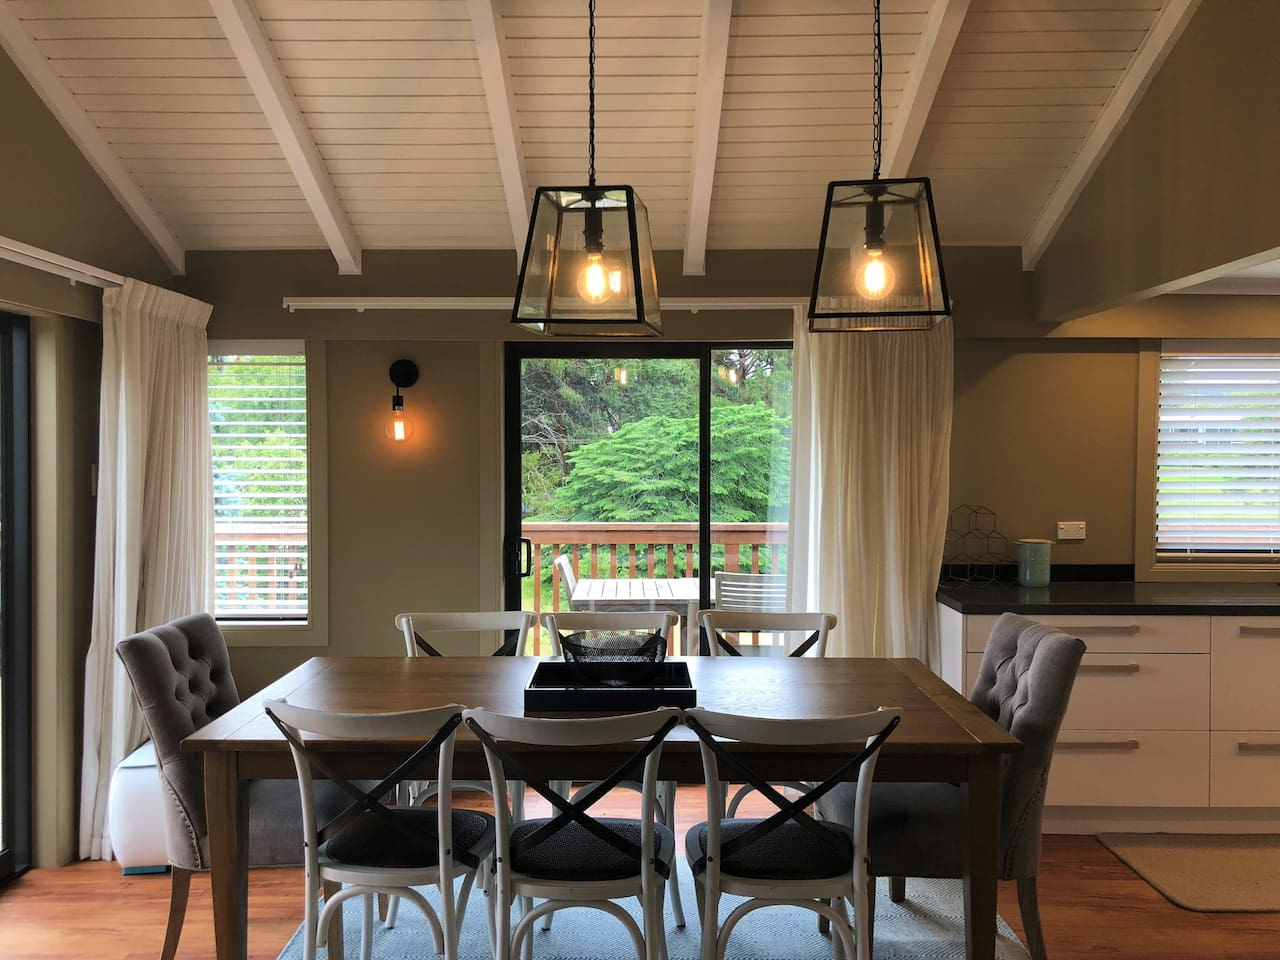 Dining area with lake view